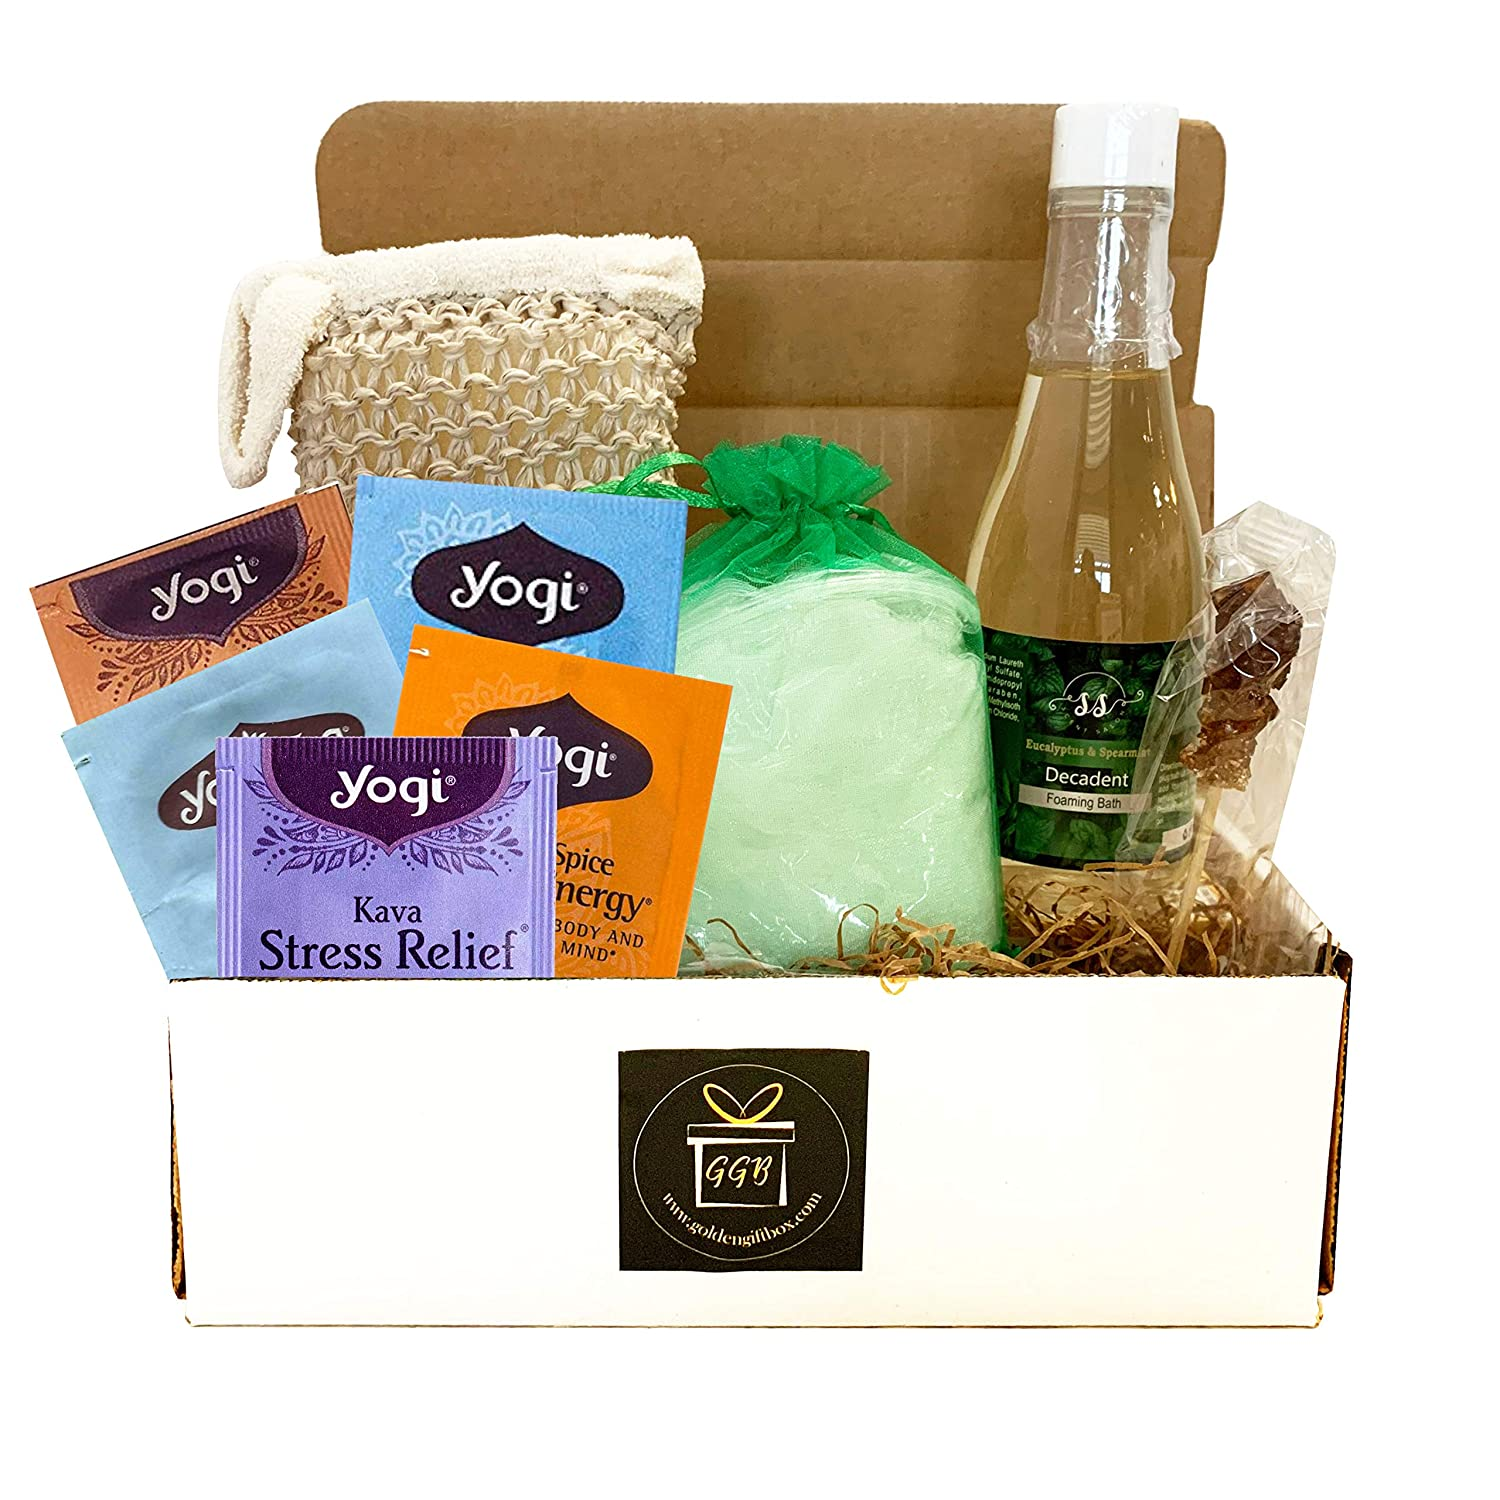 Home Spa Gift Basket For Women - Luxury Deluxe Bath & Body Gift Basket Classic Edition Large Spa Basket - Spa Gift Basket For Women - Aromatherapy Eucalyptus Spearmint Spa Kit! (9 pieces)